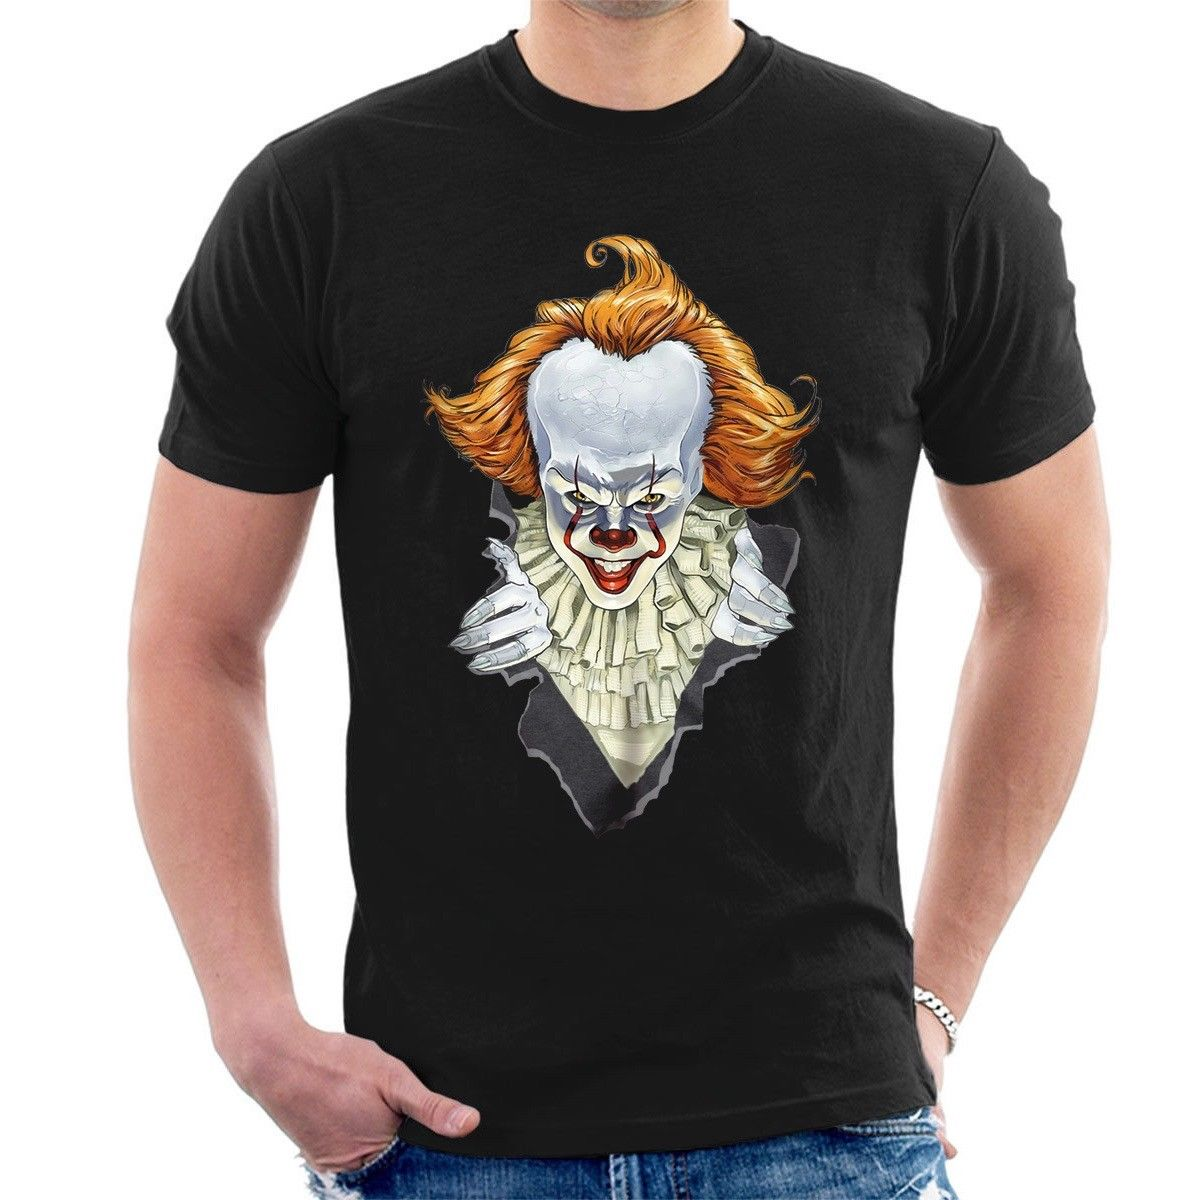 Pennywise Bursting Out T Shirt Stephen King It Ballon Clown Movie Inspired F09 Delicious In Taste T-shirts Men's Clothing